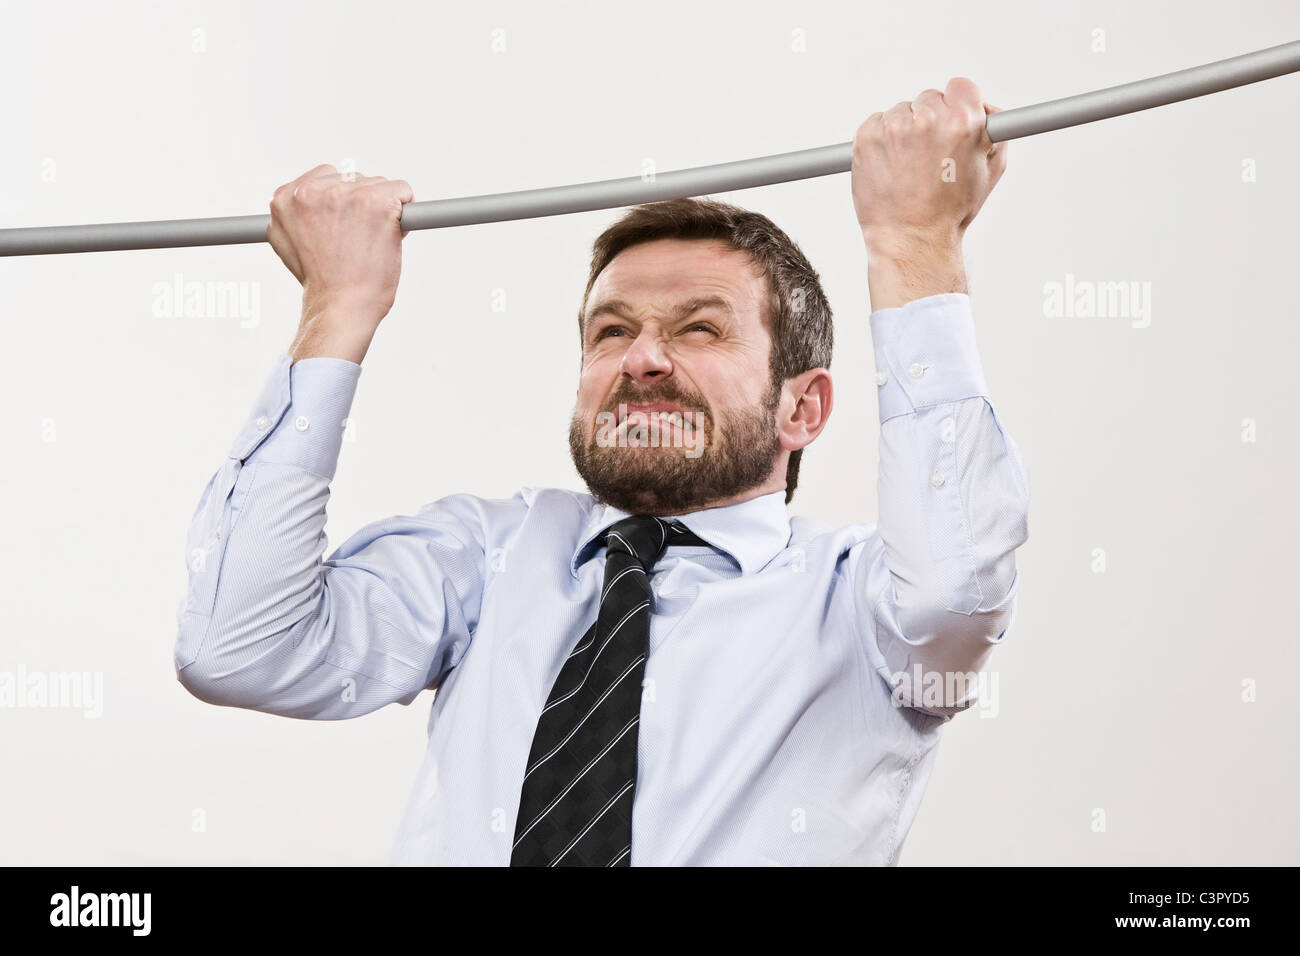 Businessman doing pull-ups, close-up - Stock Image